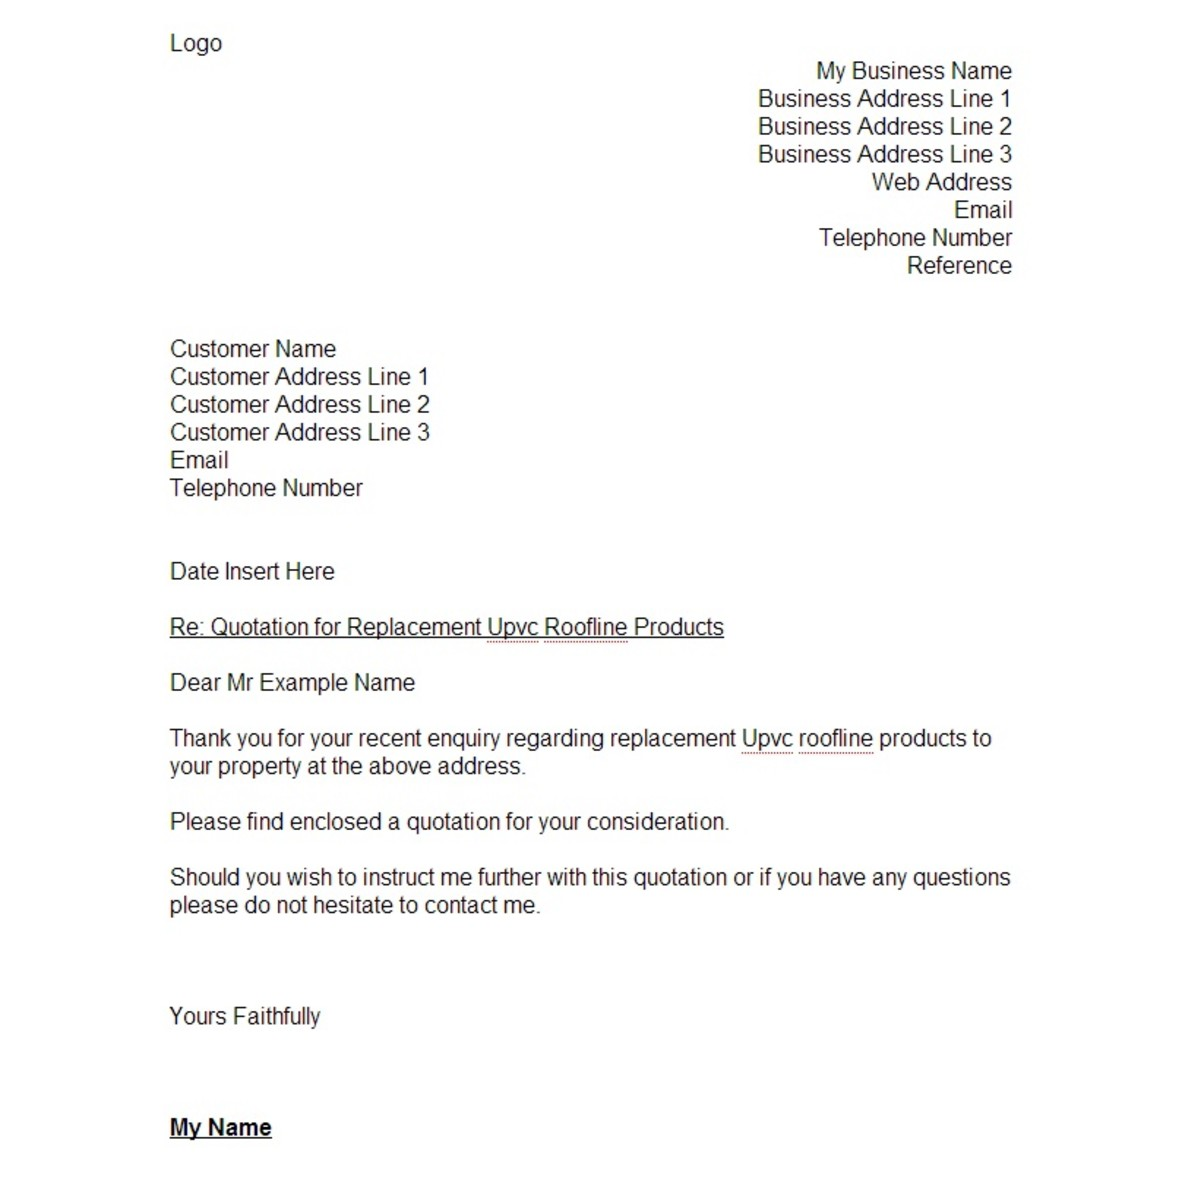 Cover Letter For Business Quote Request For Quote Cover Letter – Sample for Quotation